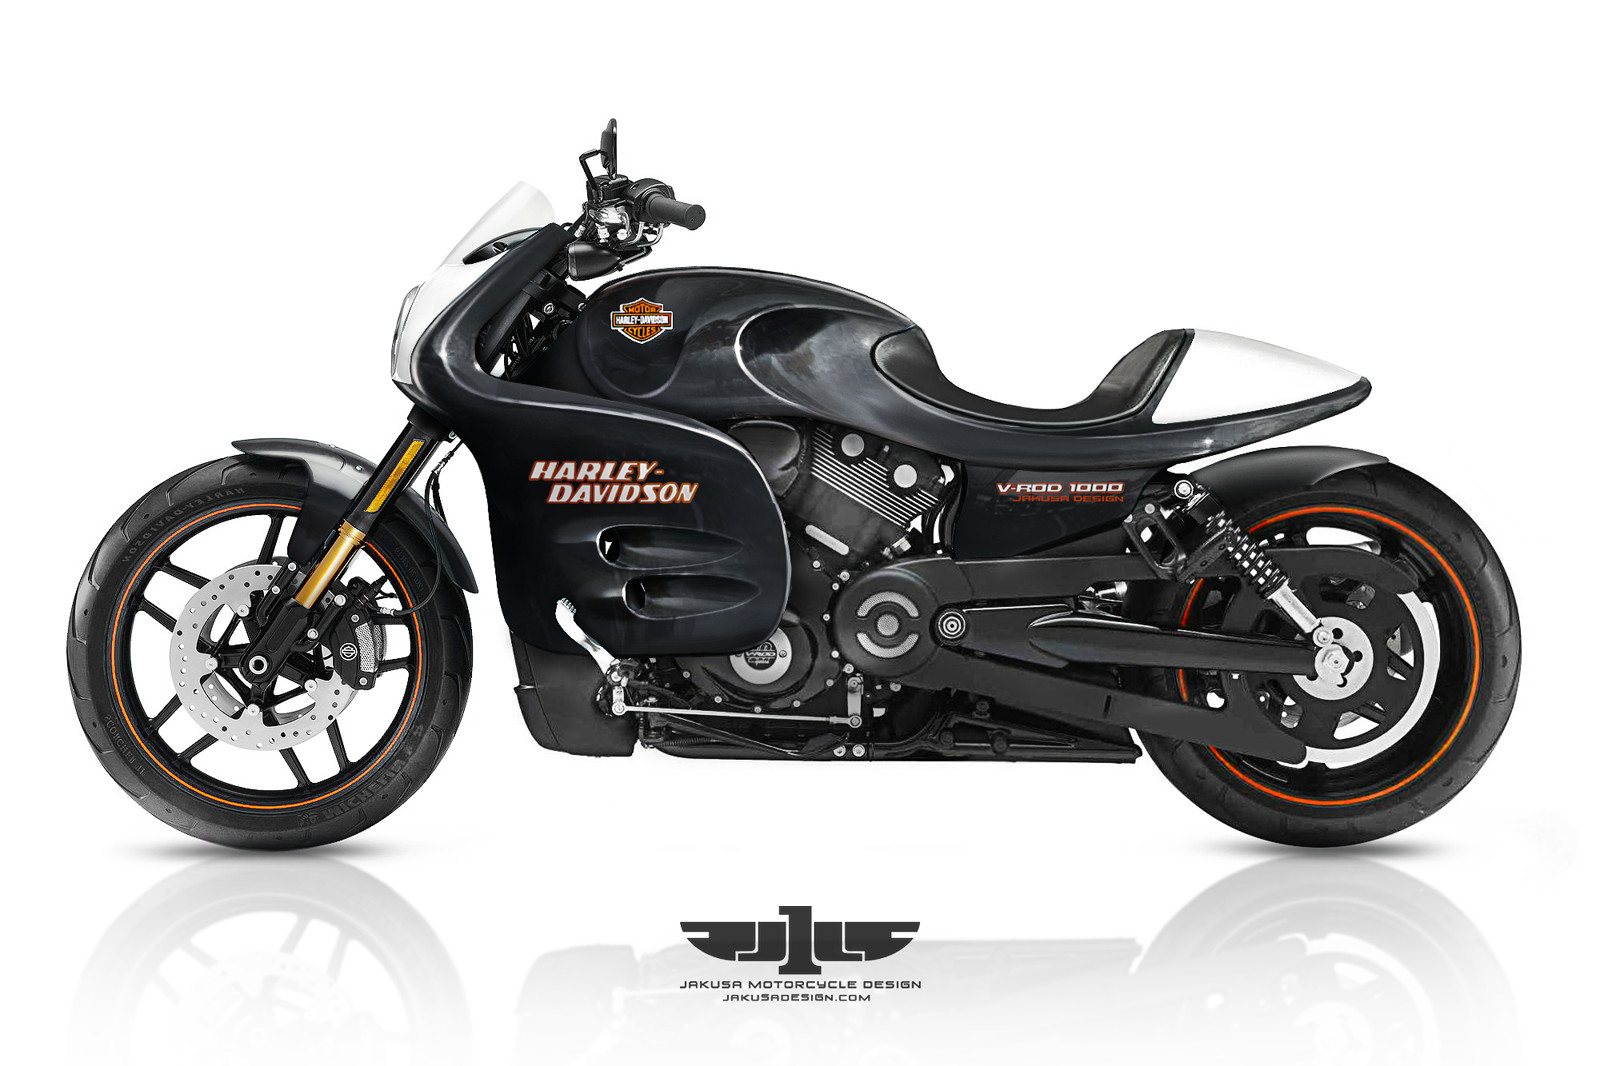 Jakusa Designs A Gallery Of Motorcycle Perfection In Concept Form Moto Networks